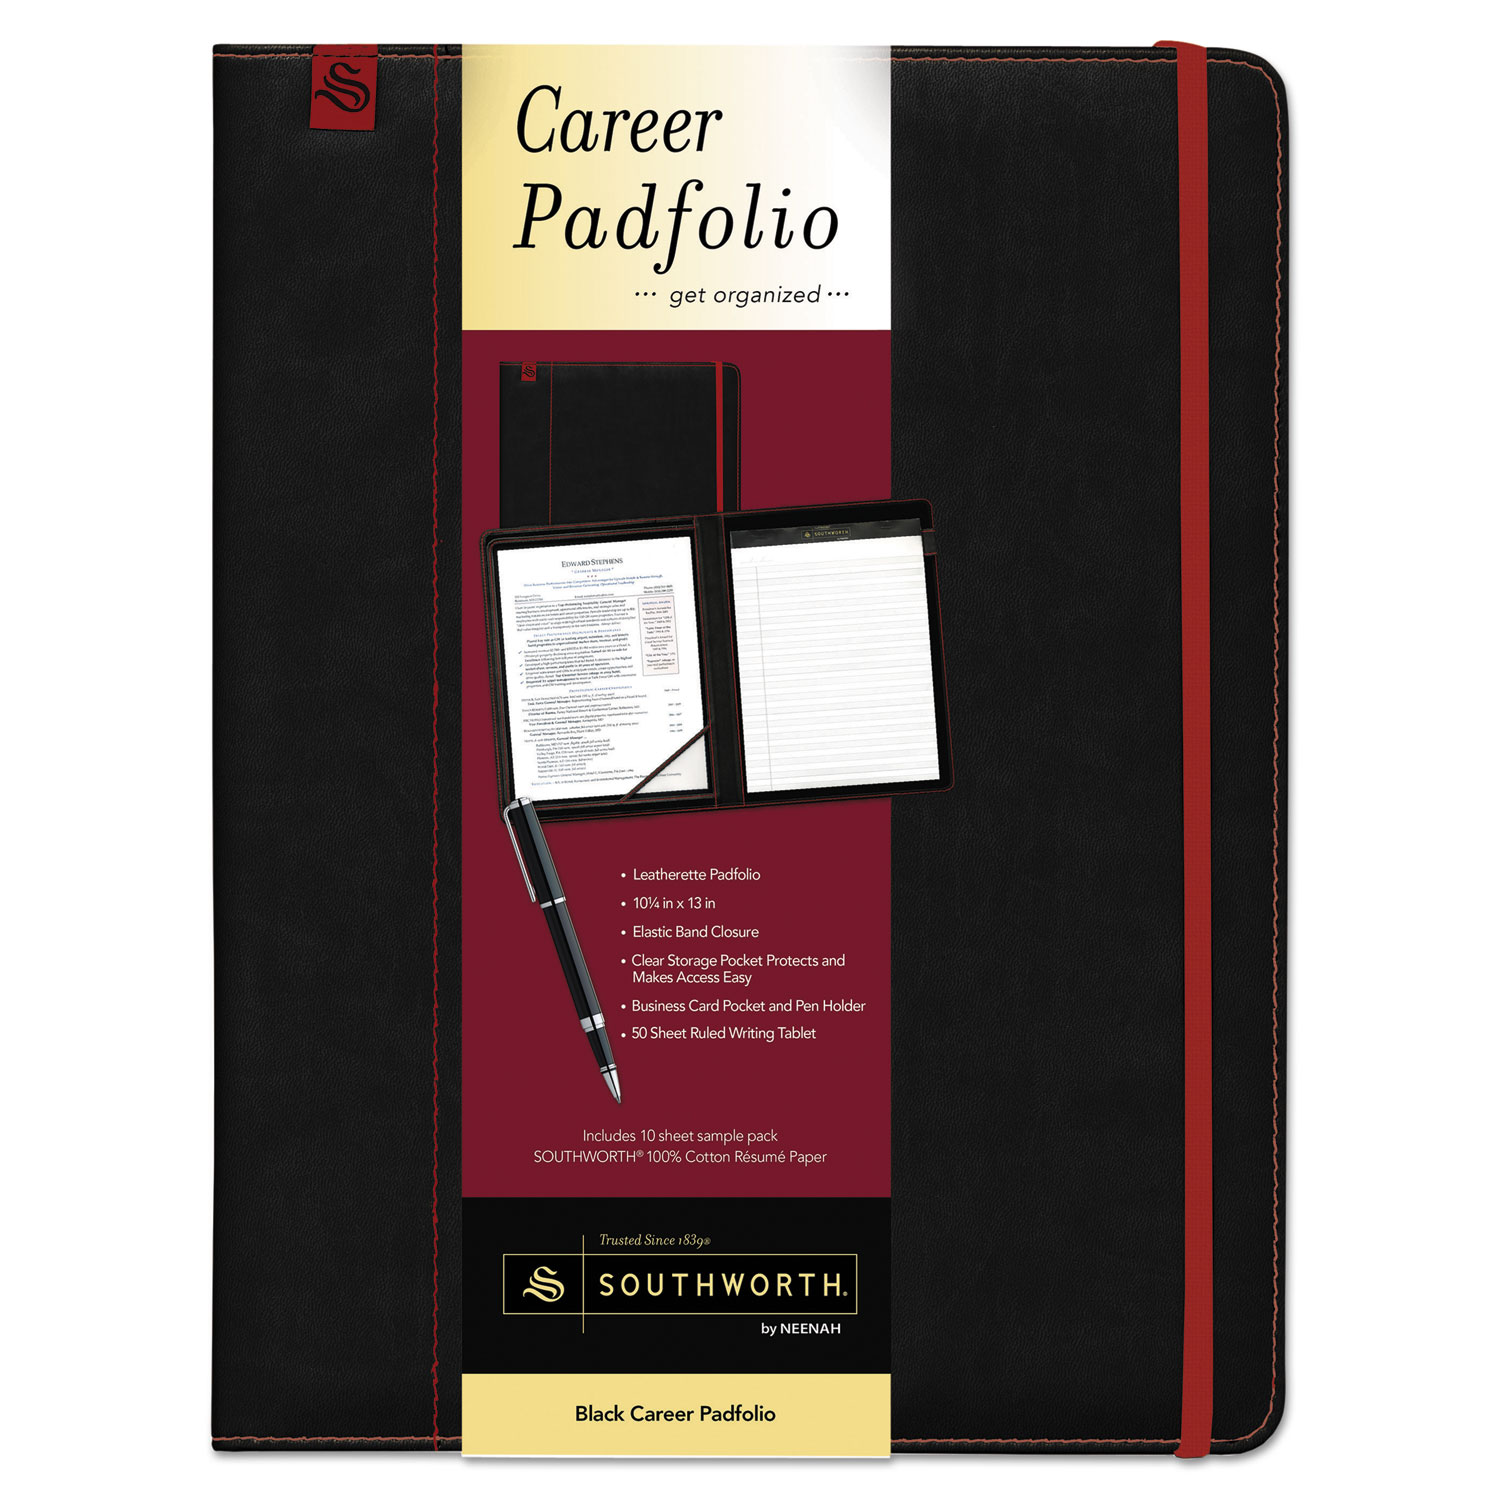 resume Southworth Resume Paper career pad folio by sou99671 ontimesupplies com thumbnail 1